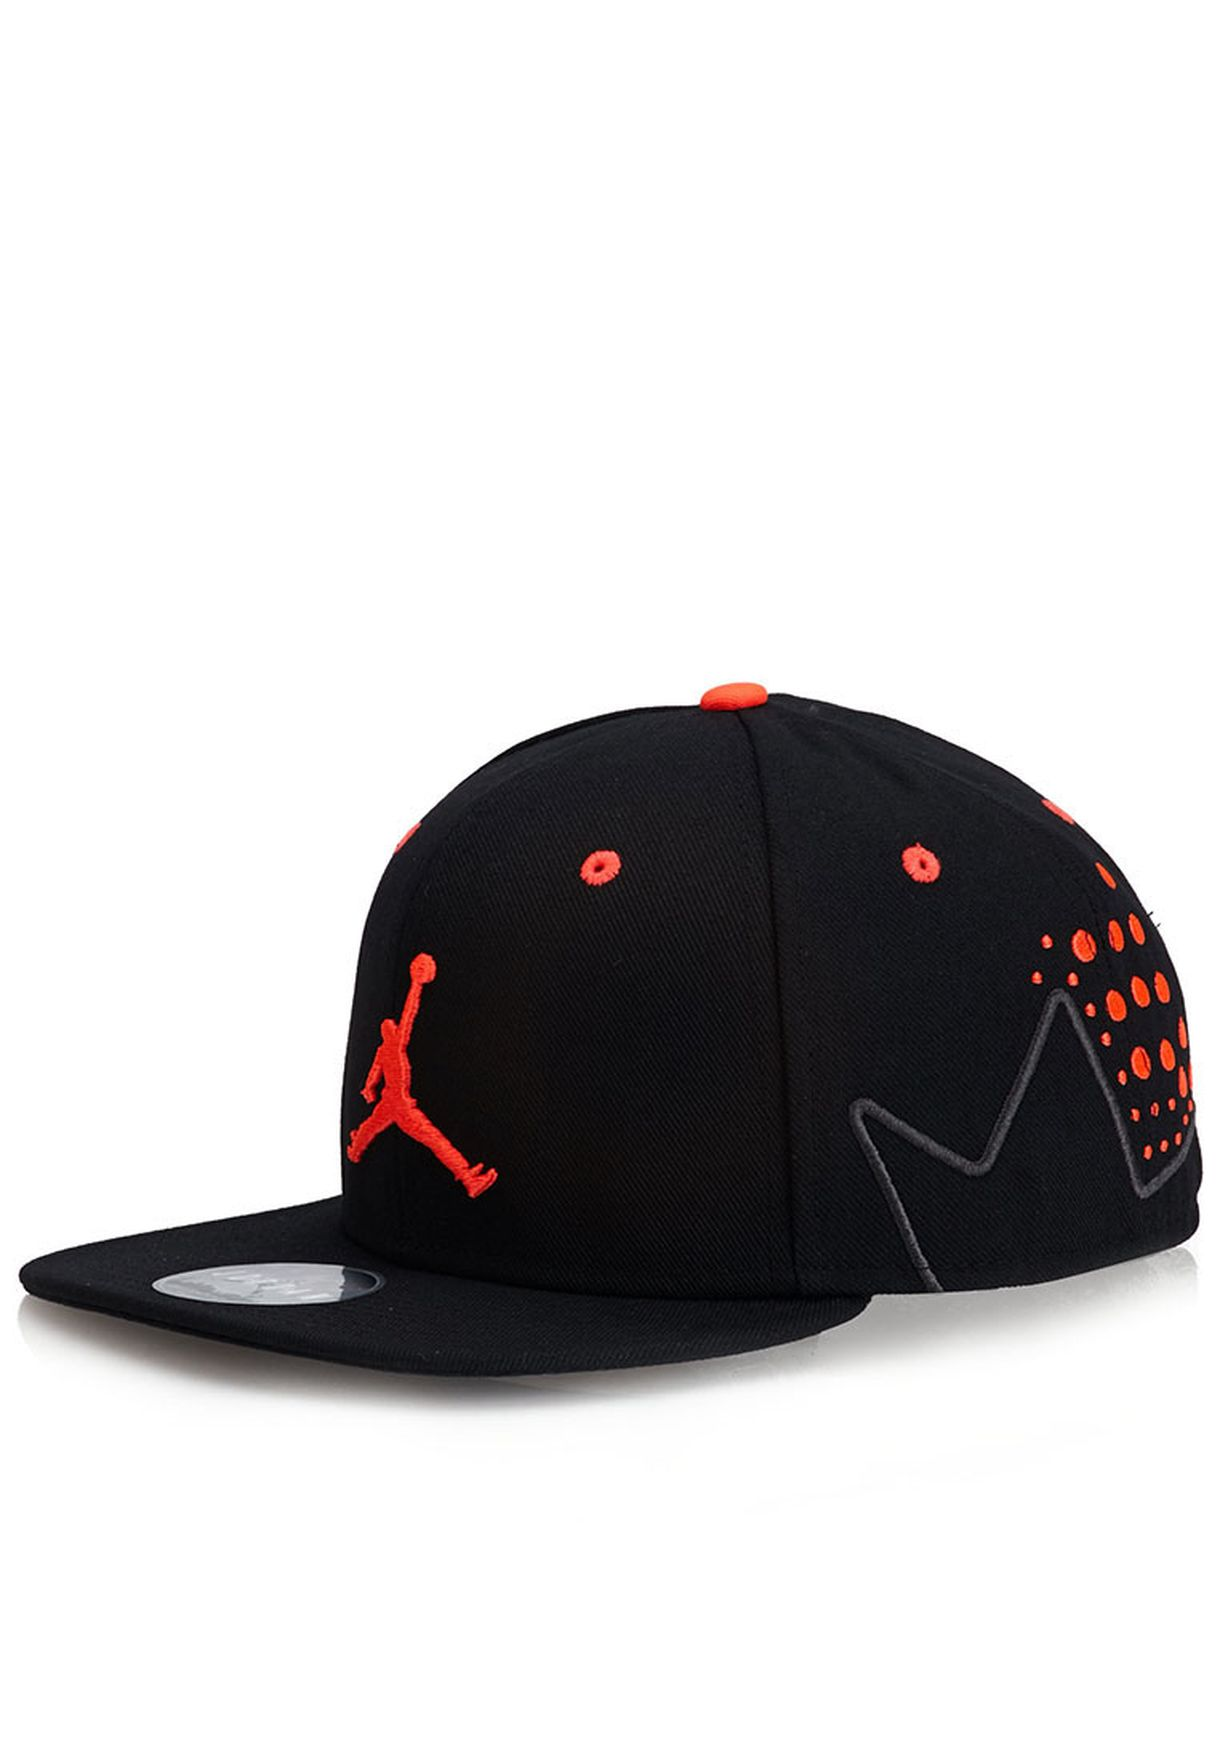 e7eb7663d01 ... sale philippines find brand e853e 0bf1c; coupon code for shop nike  black jordan jumpman cap 619362 011 for men in oman ni727ac31xxs